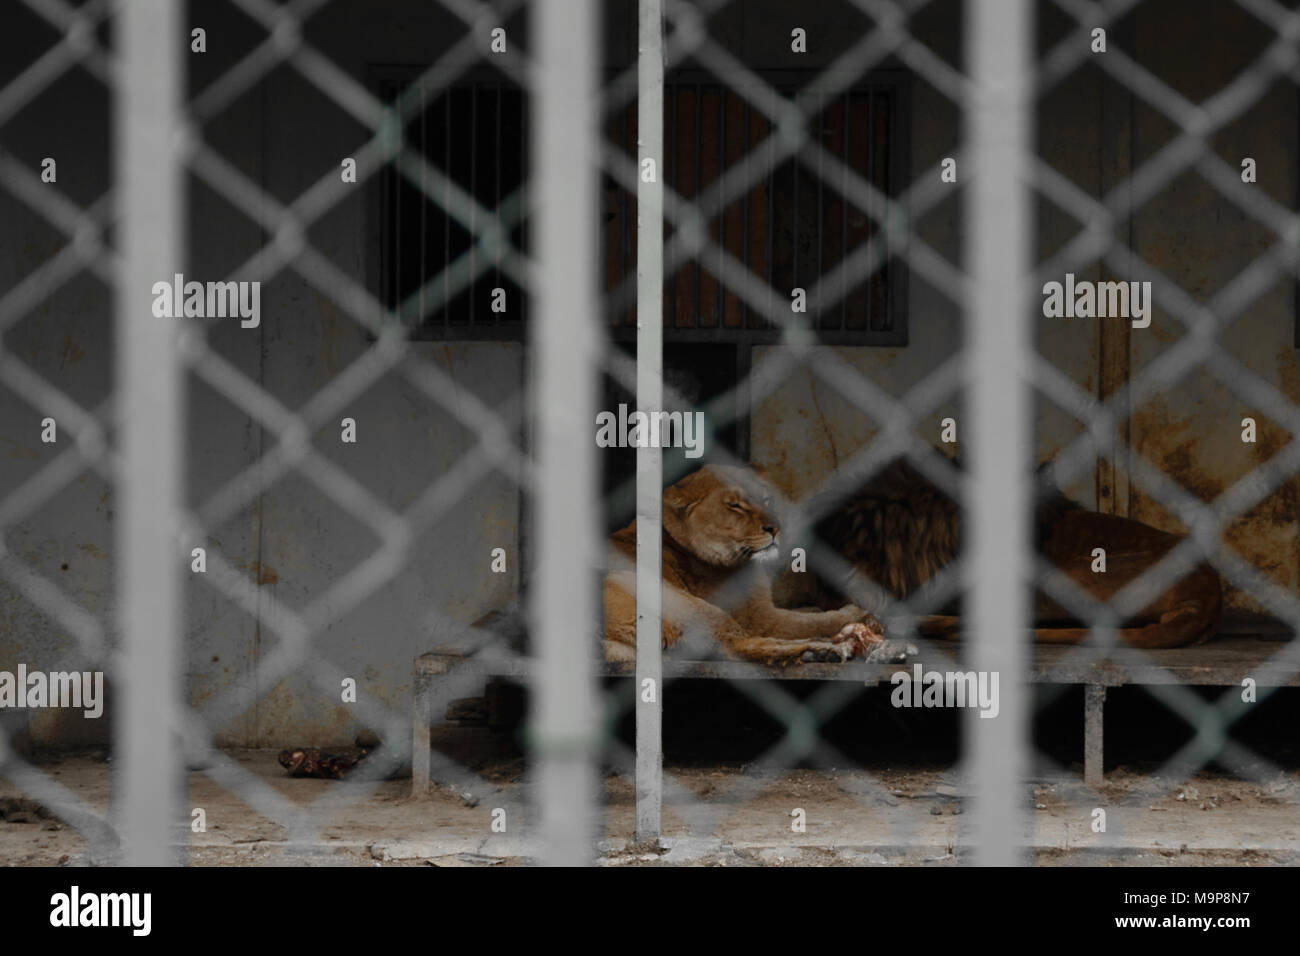 Pair of lions locked in the cage, concept - the bad living conditions of the king of the savannah - Stock Image